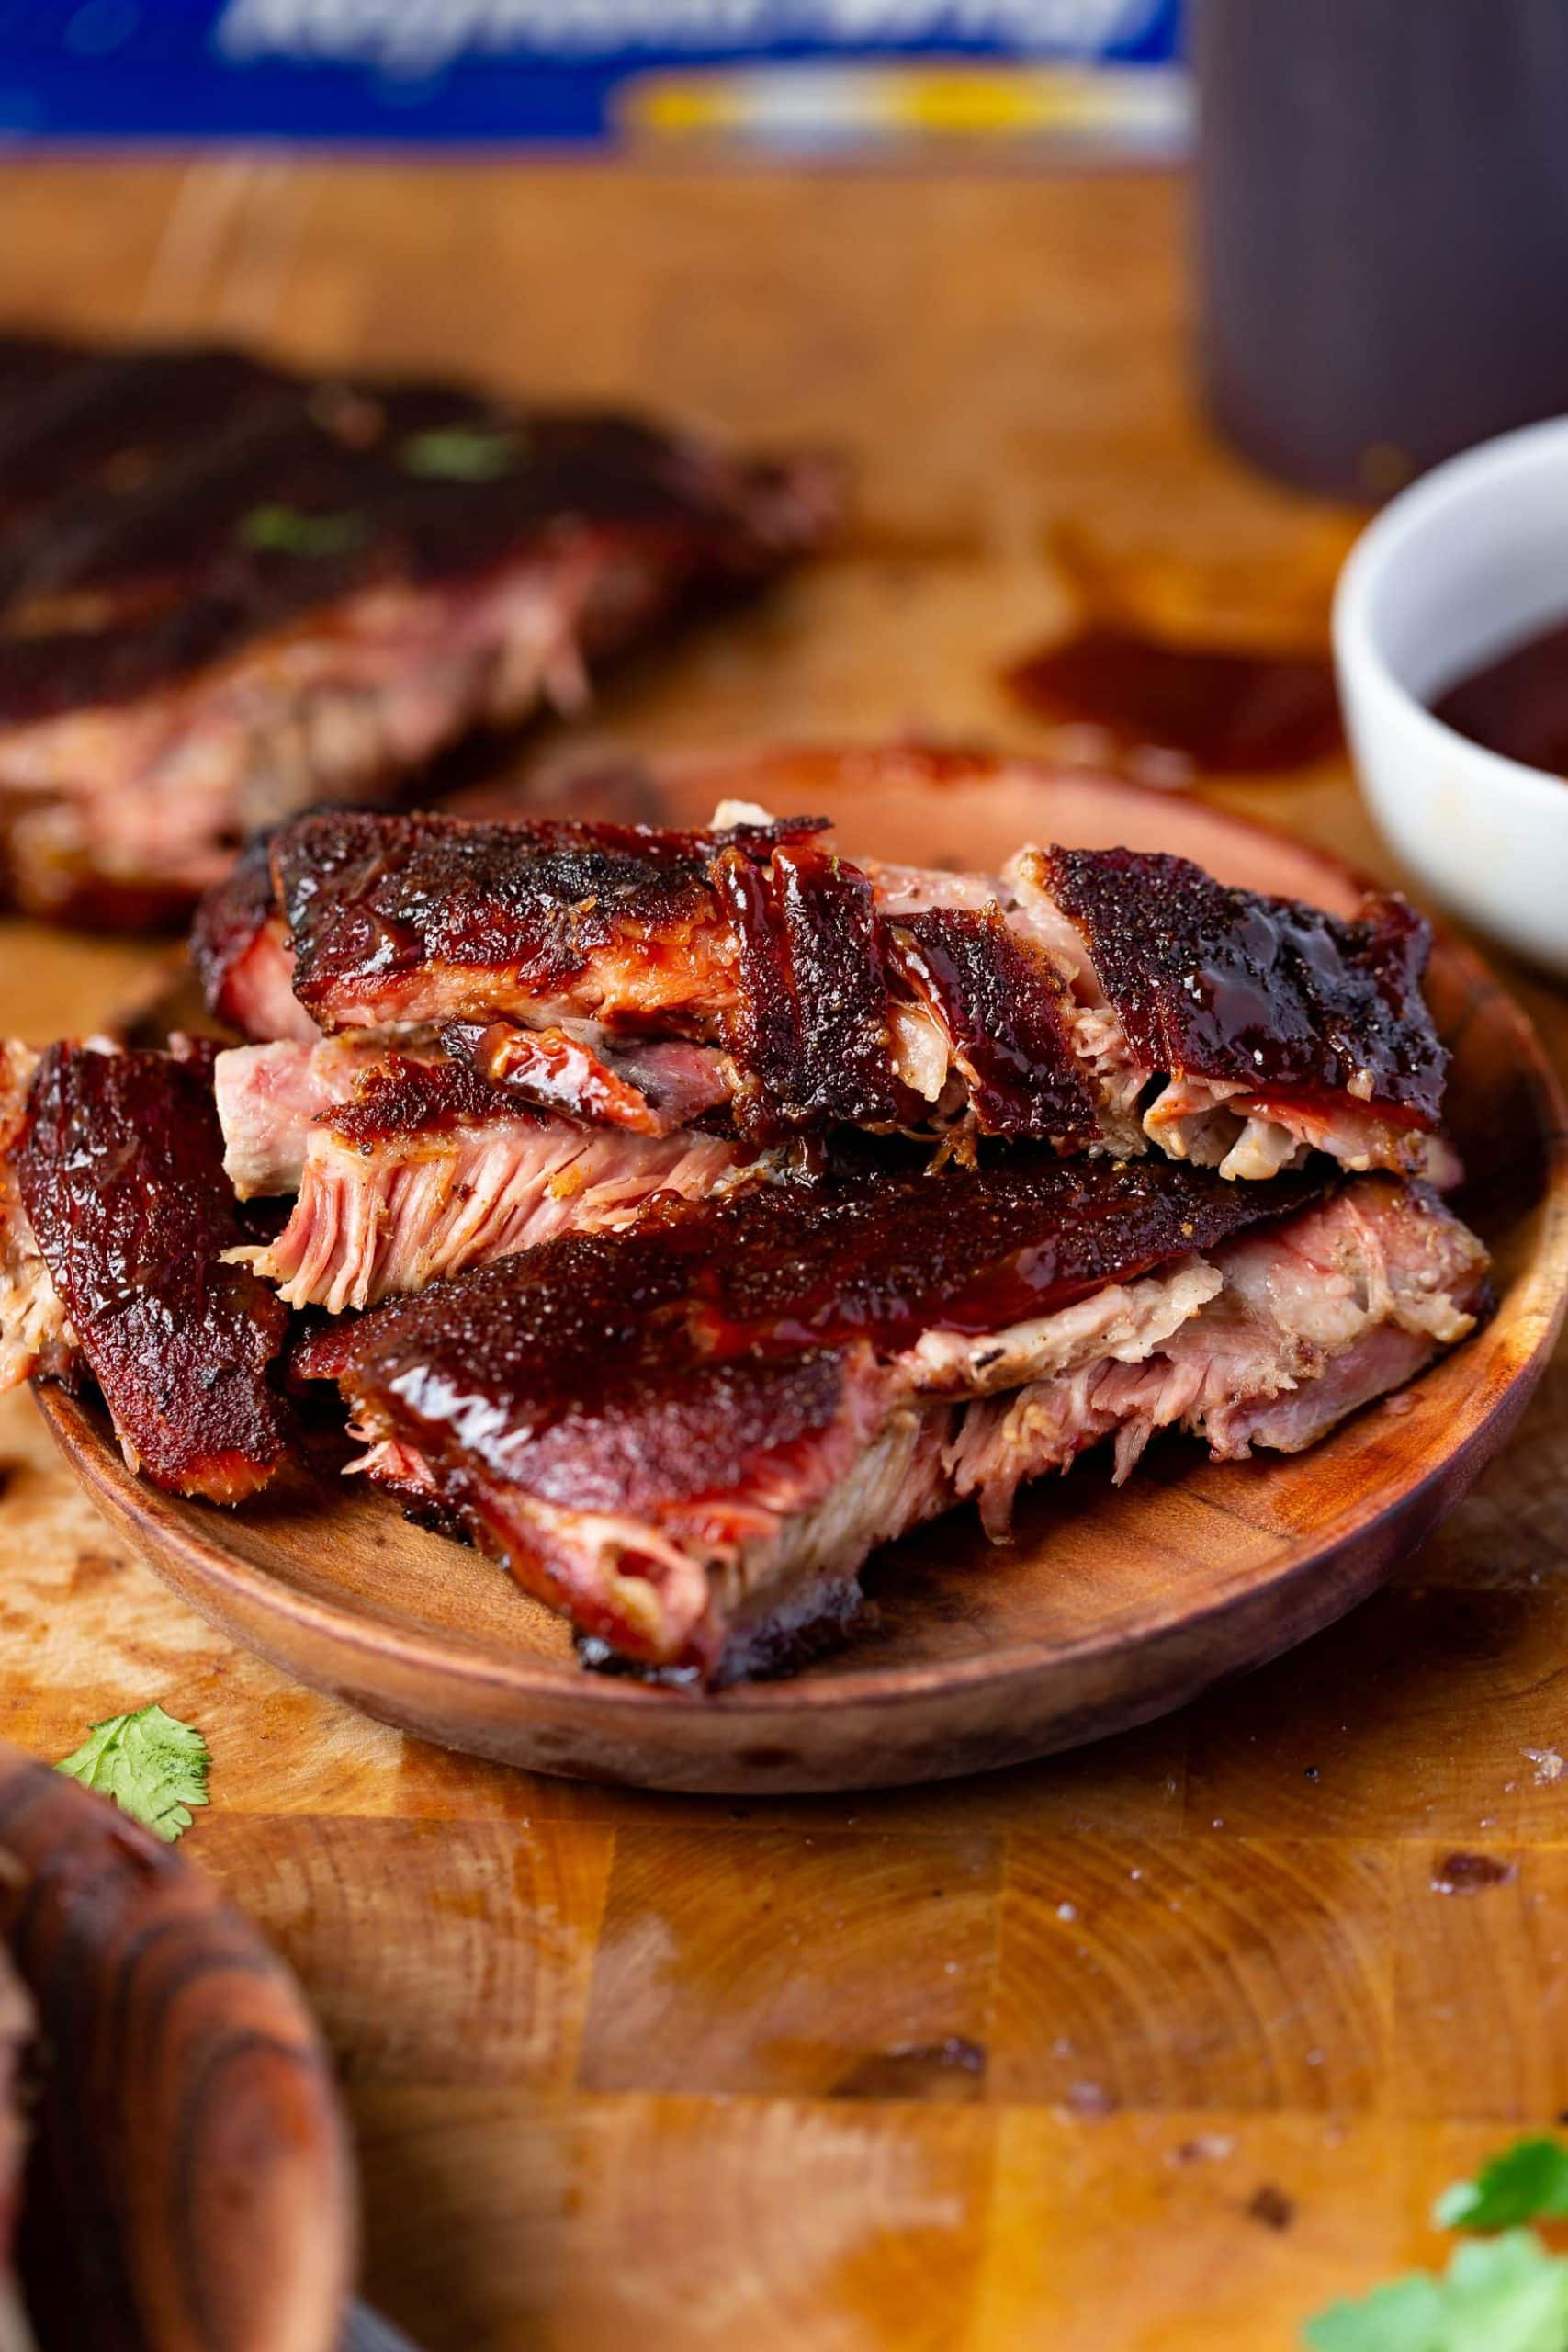 a photo of a wooden plate piled high with juicy ribs.